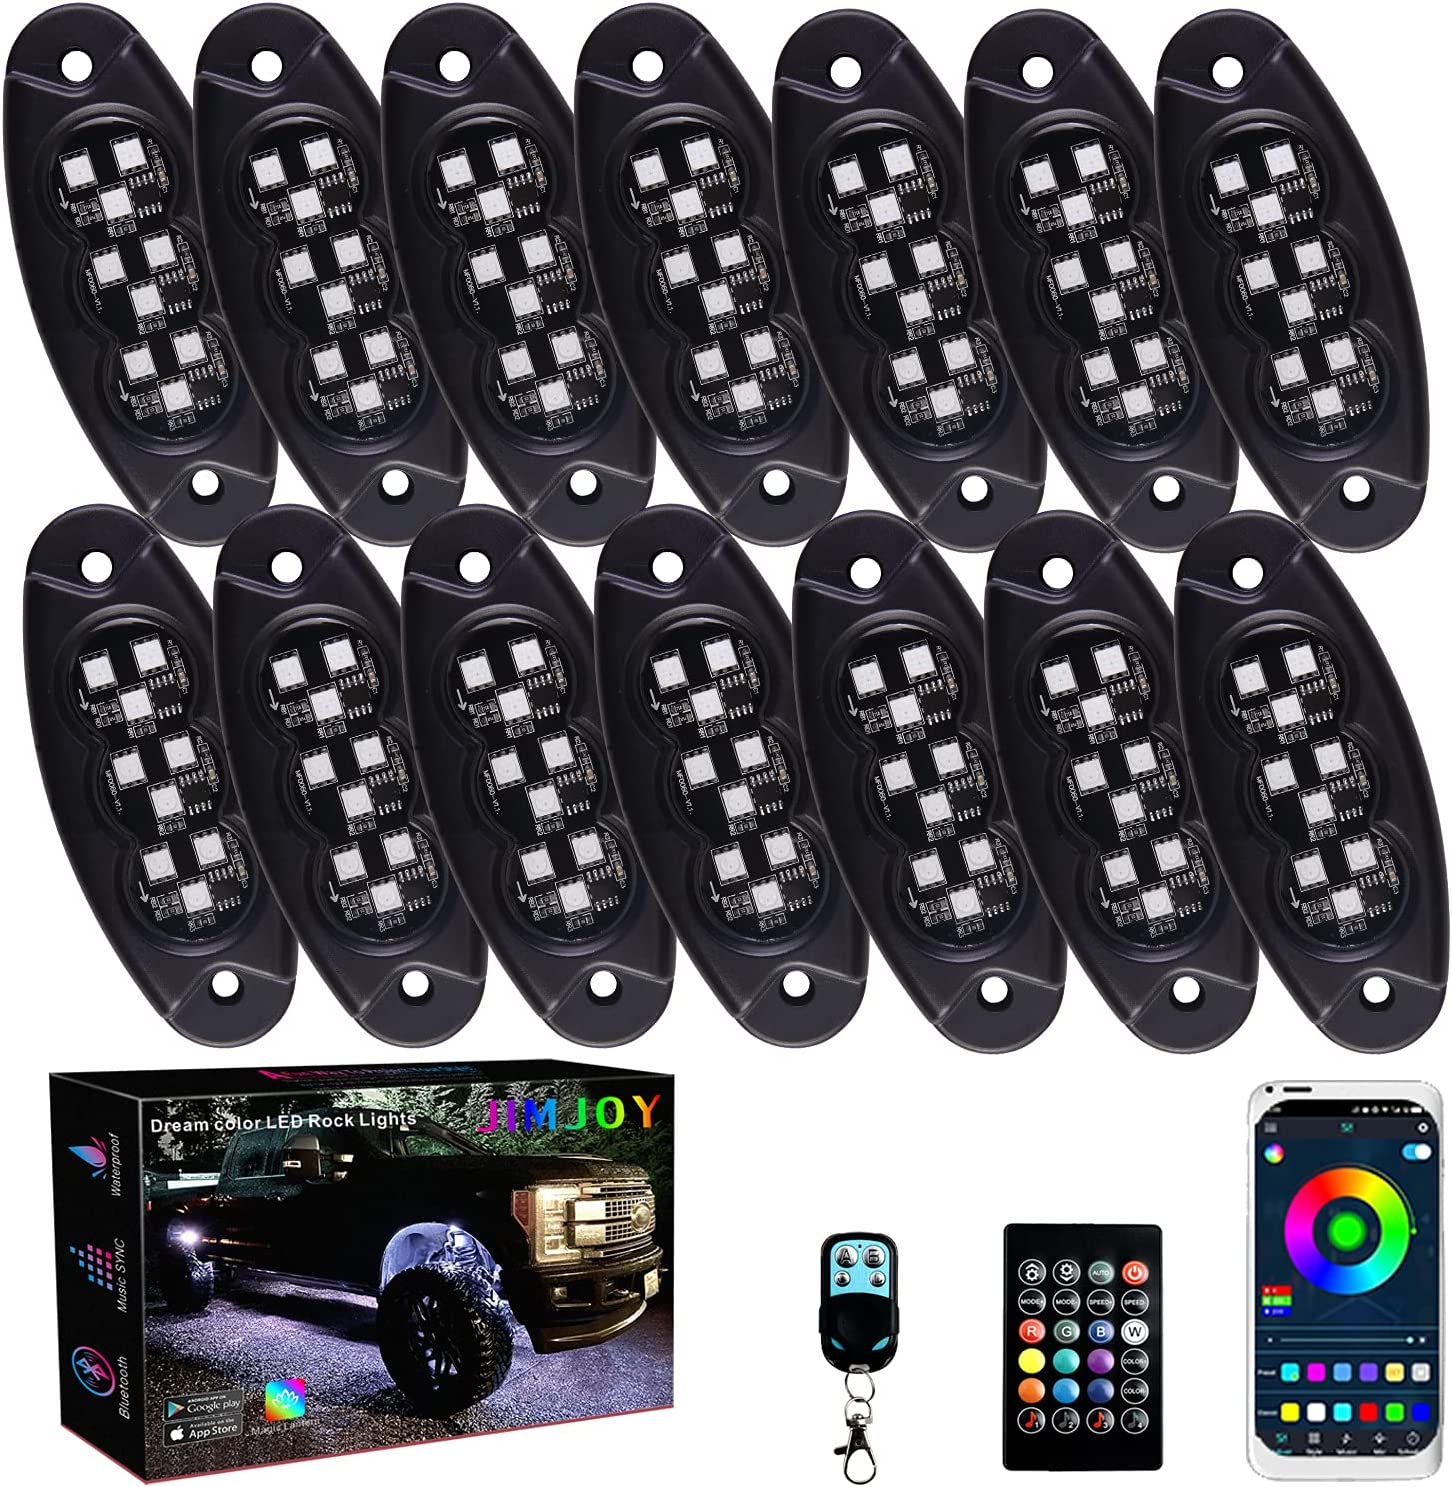 JIMJOY RGB LED Rock Lights Low price 14 Multicolor Cash special price Waterproof Pods Chasing